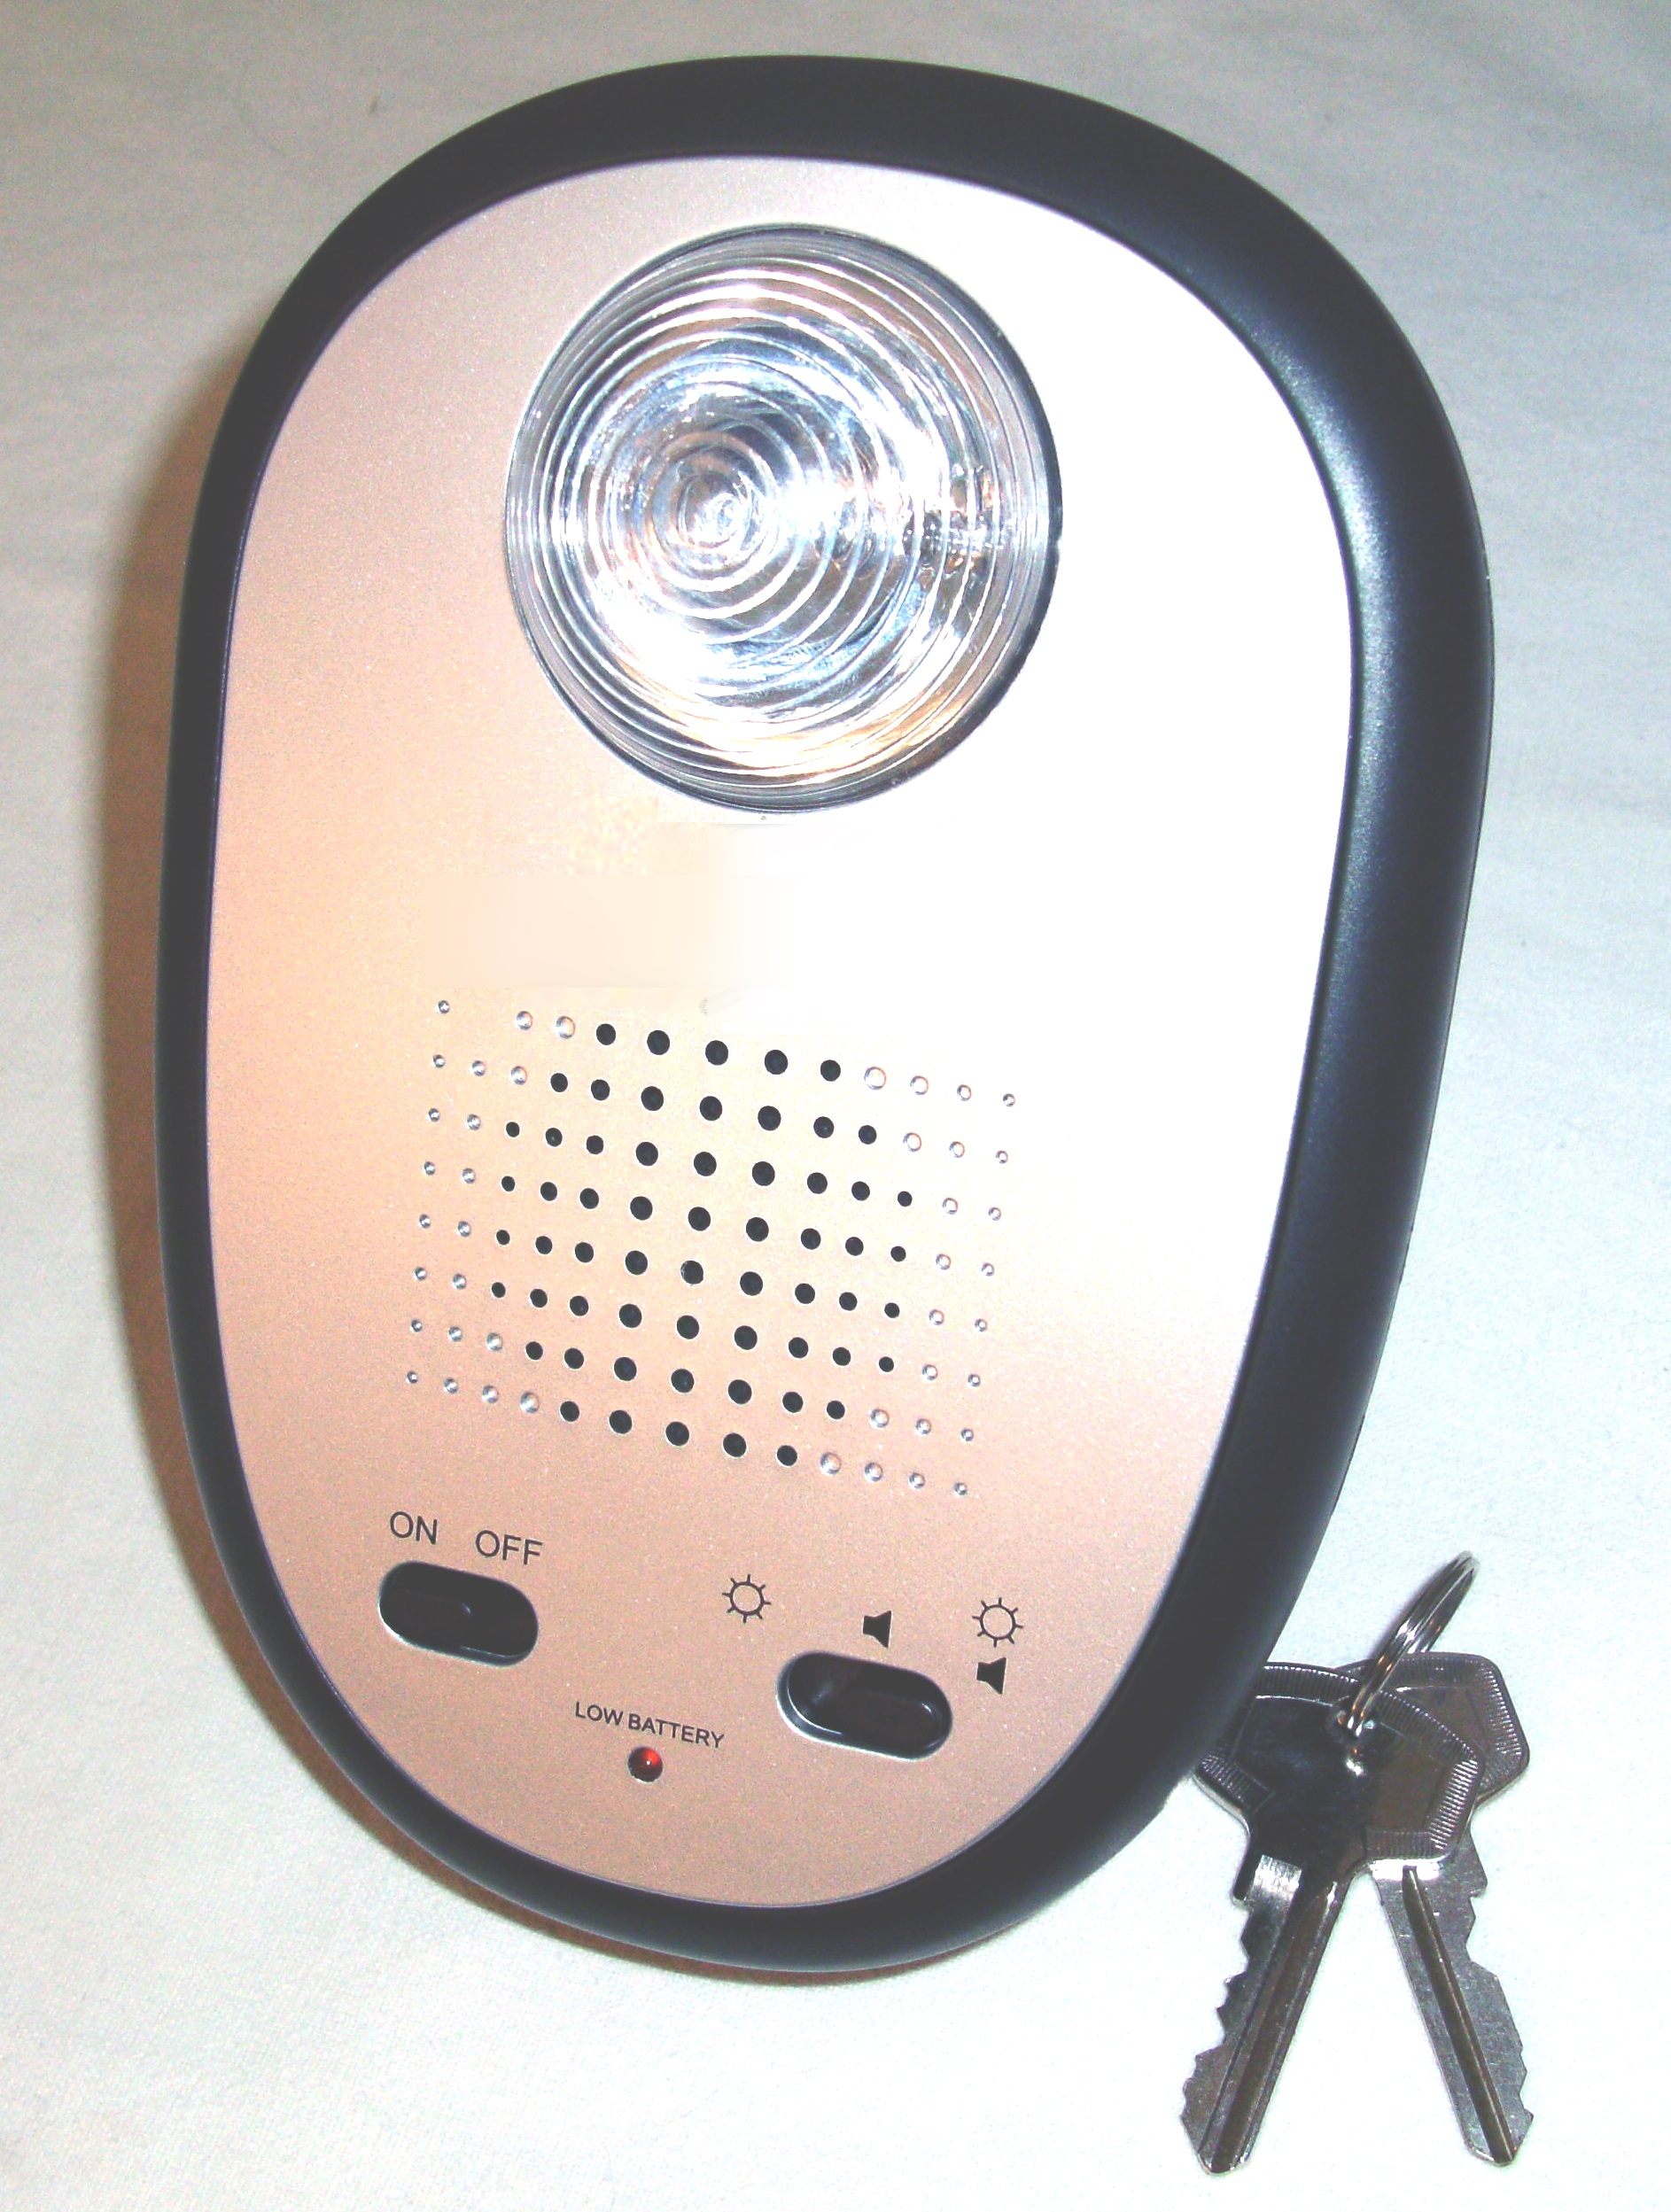 #4 Call Ringer Flasher with Door Bell and Panic Alert Button $99.99 & Wireless Alerter Ringer Flasher